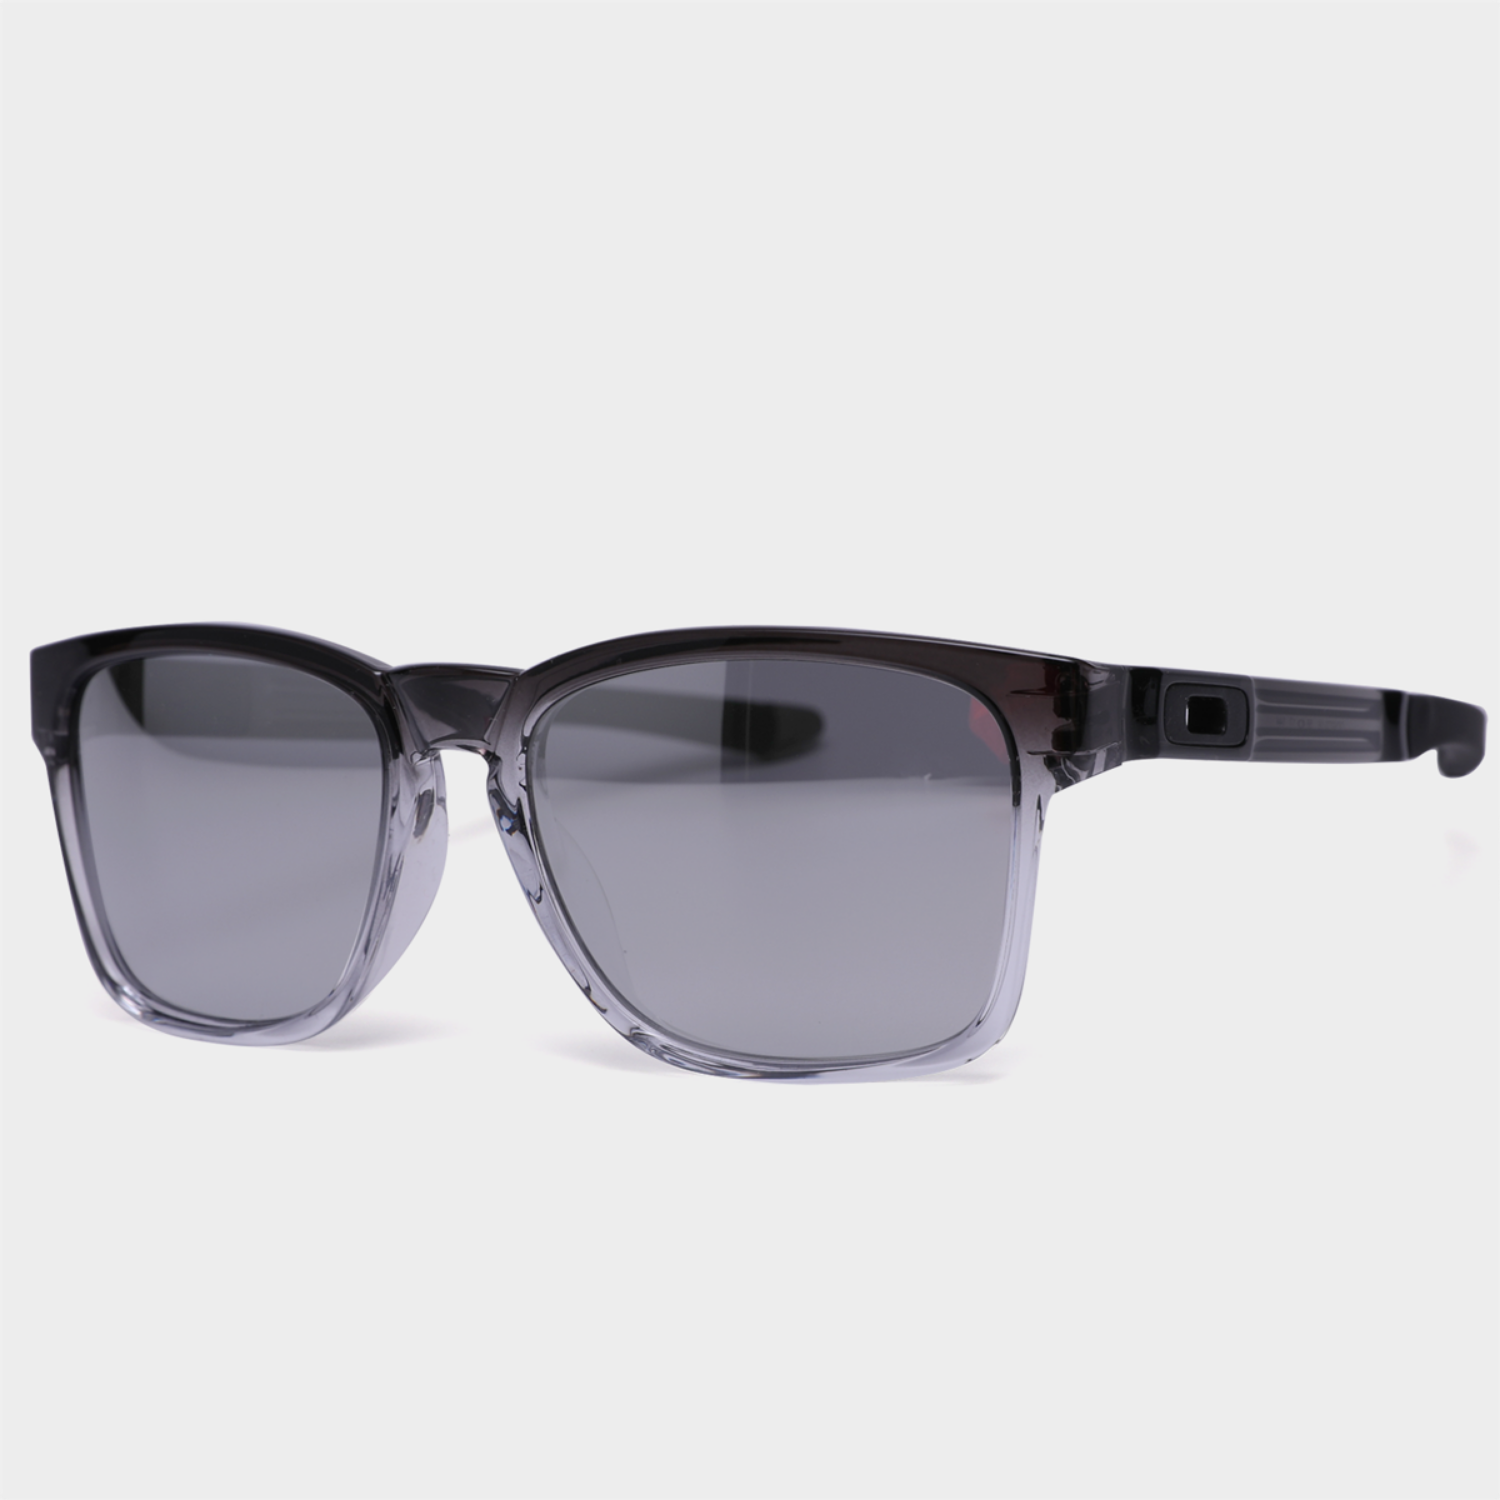 [오클리선글라스] 캐탈리스트 CATALYST OO9272 18 (Chrome Iridium Lens) (OAKLEY)